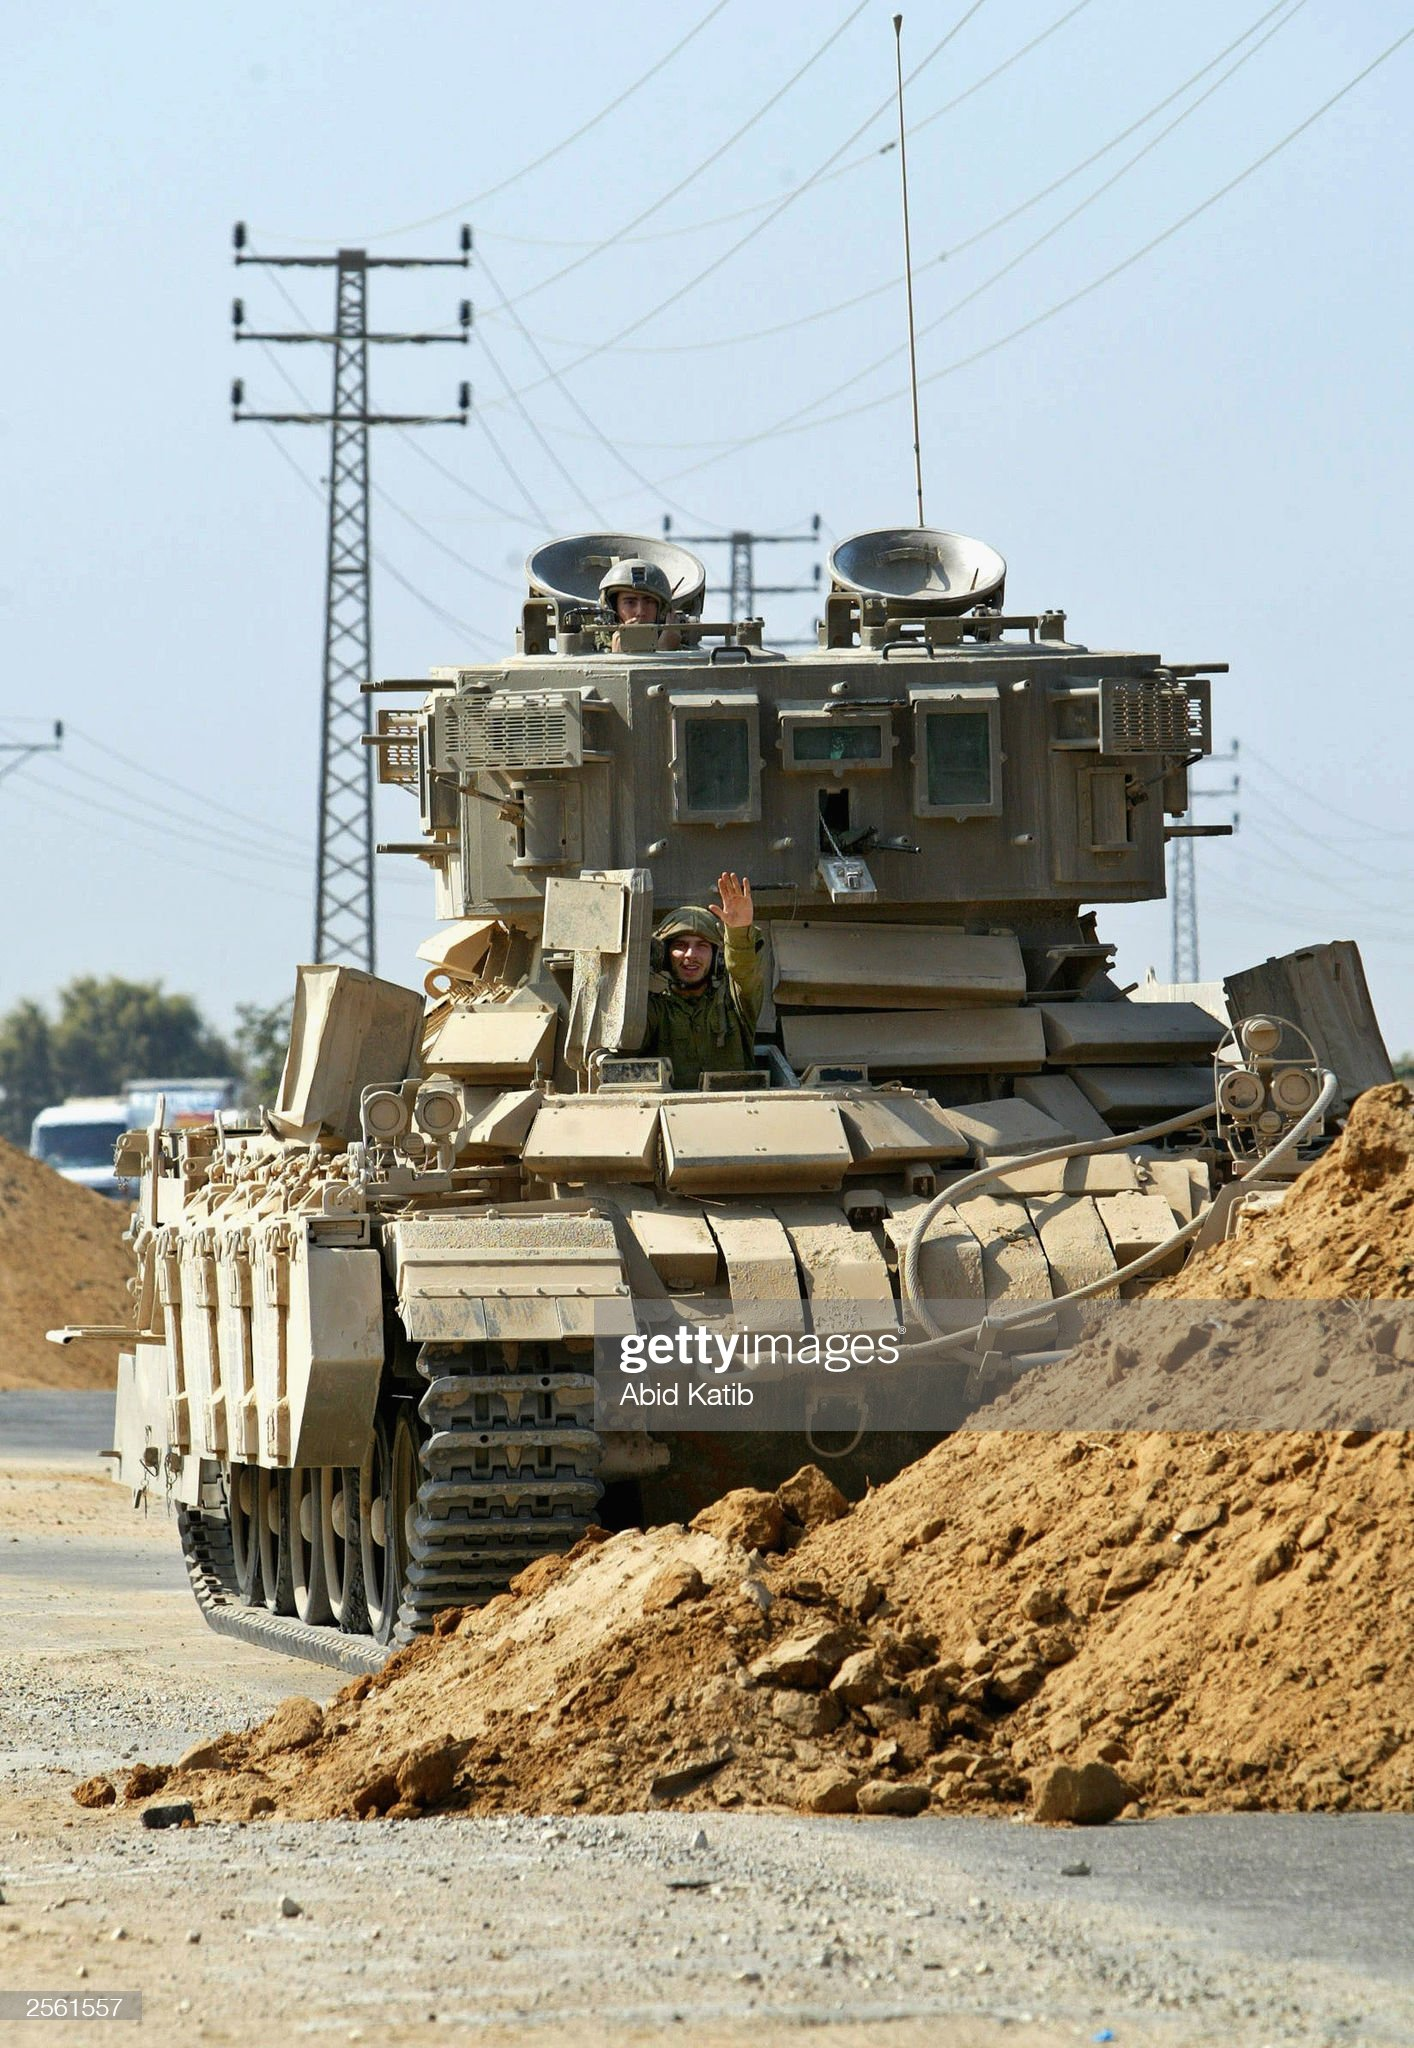 https://media.gettyimages.com/photos/an-israeli-tank-blocks-off-a-road-near-the-jewish-settlement-of-5-picture-id2561557?s=2048x2048